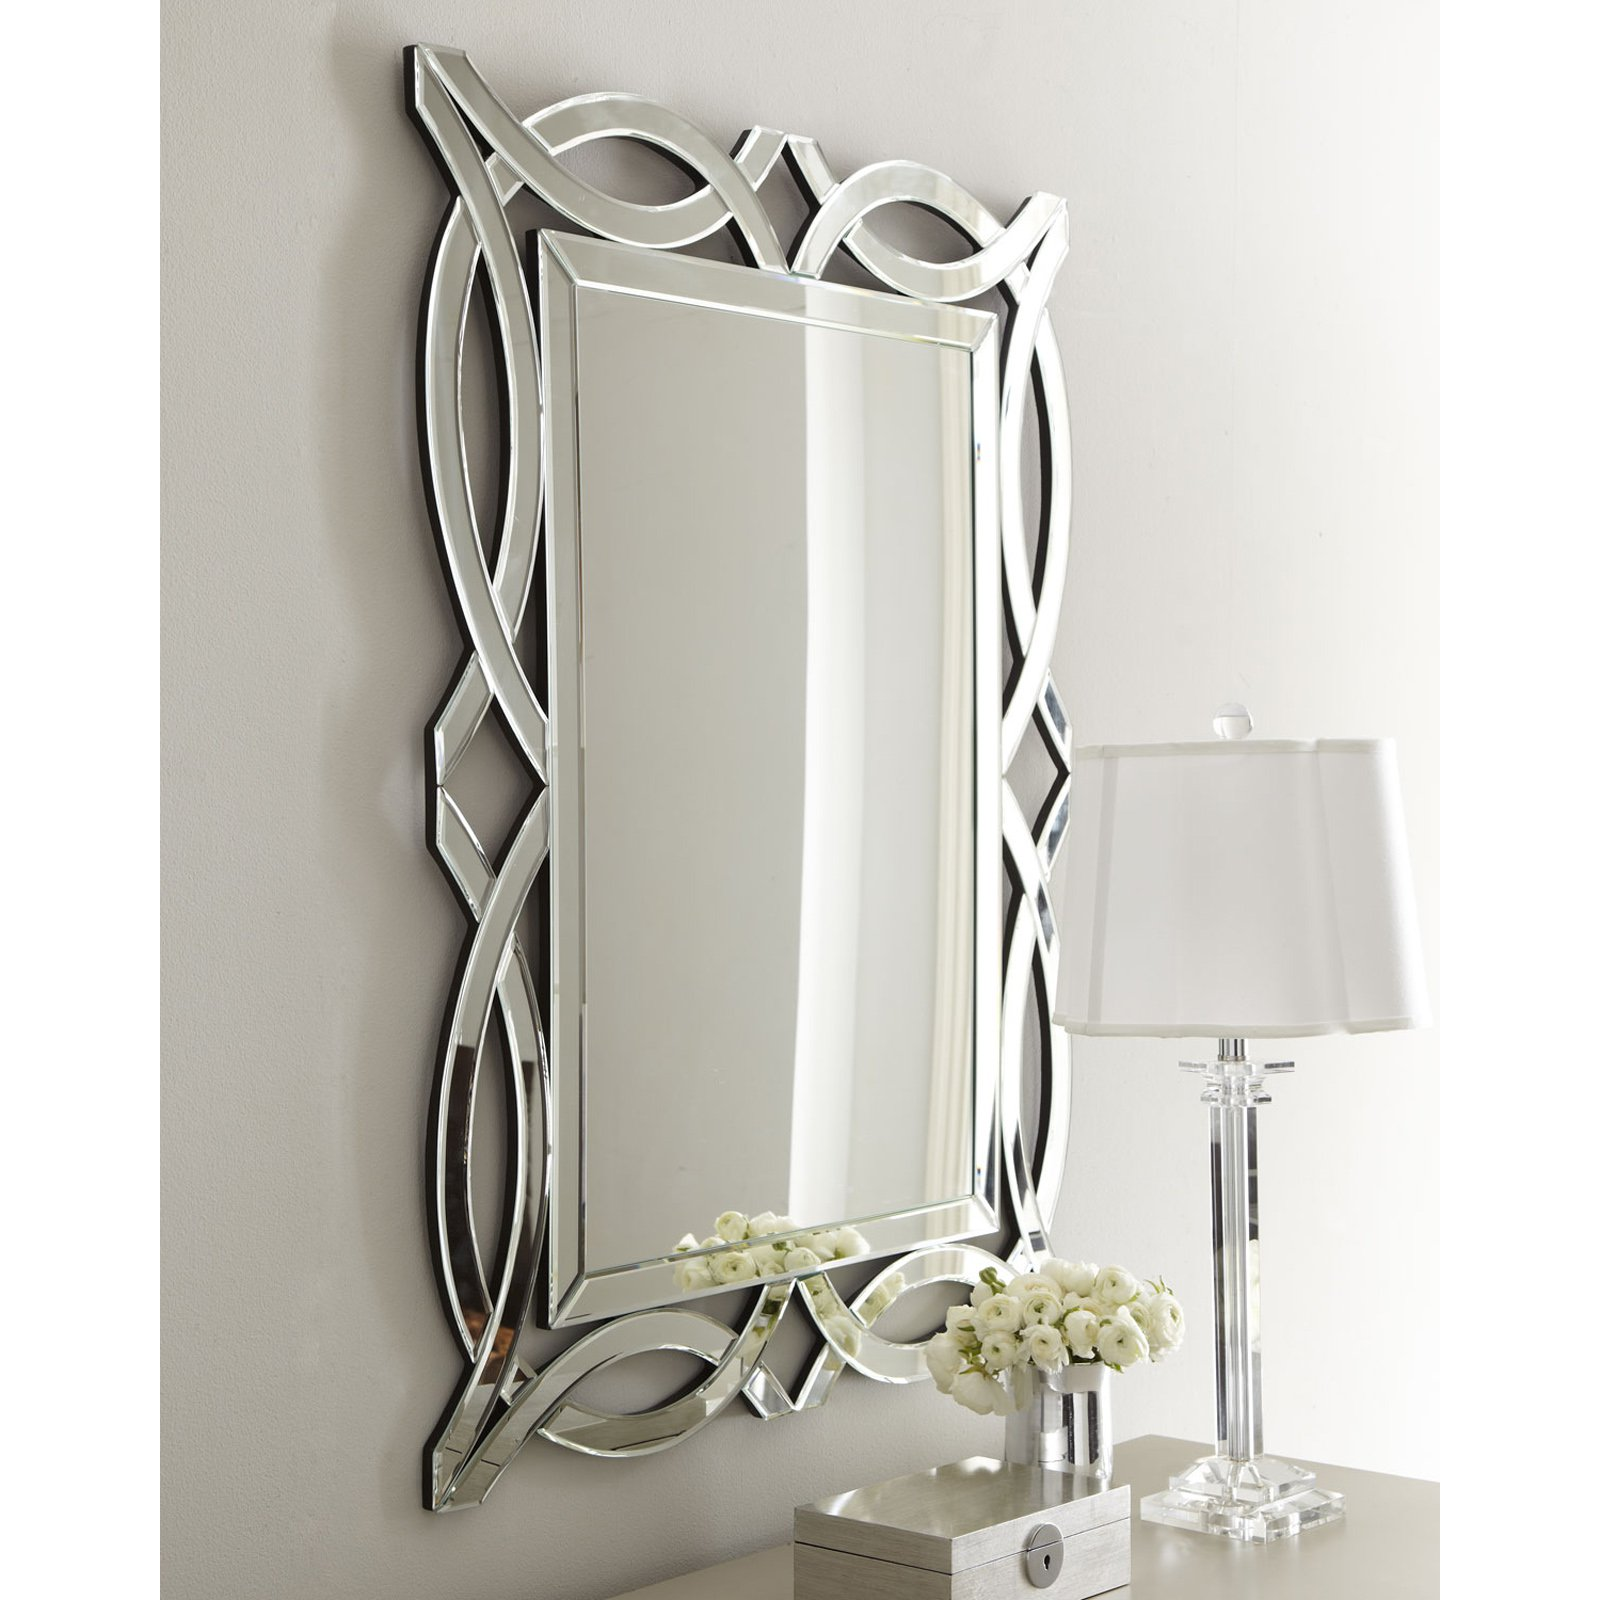 Afina Modern Luxe Wall Mirror - 32W x 42H in.